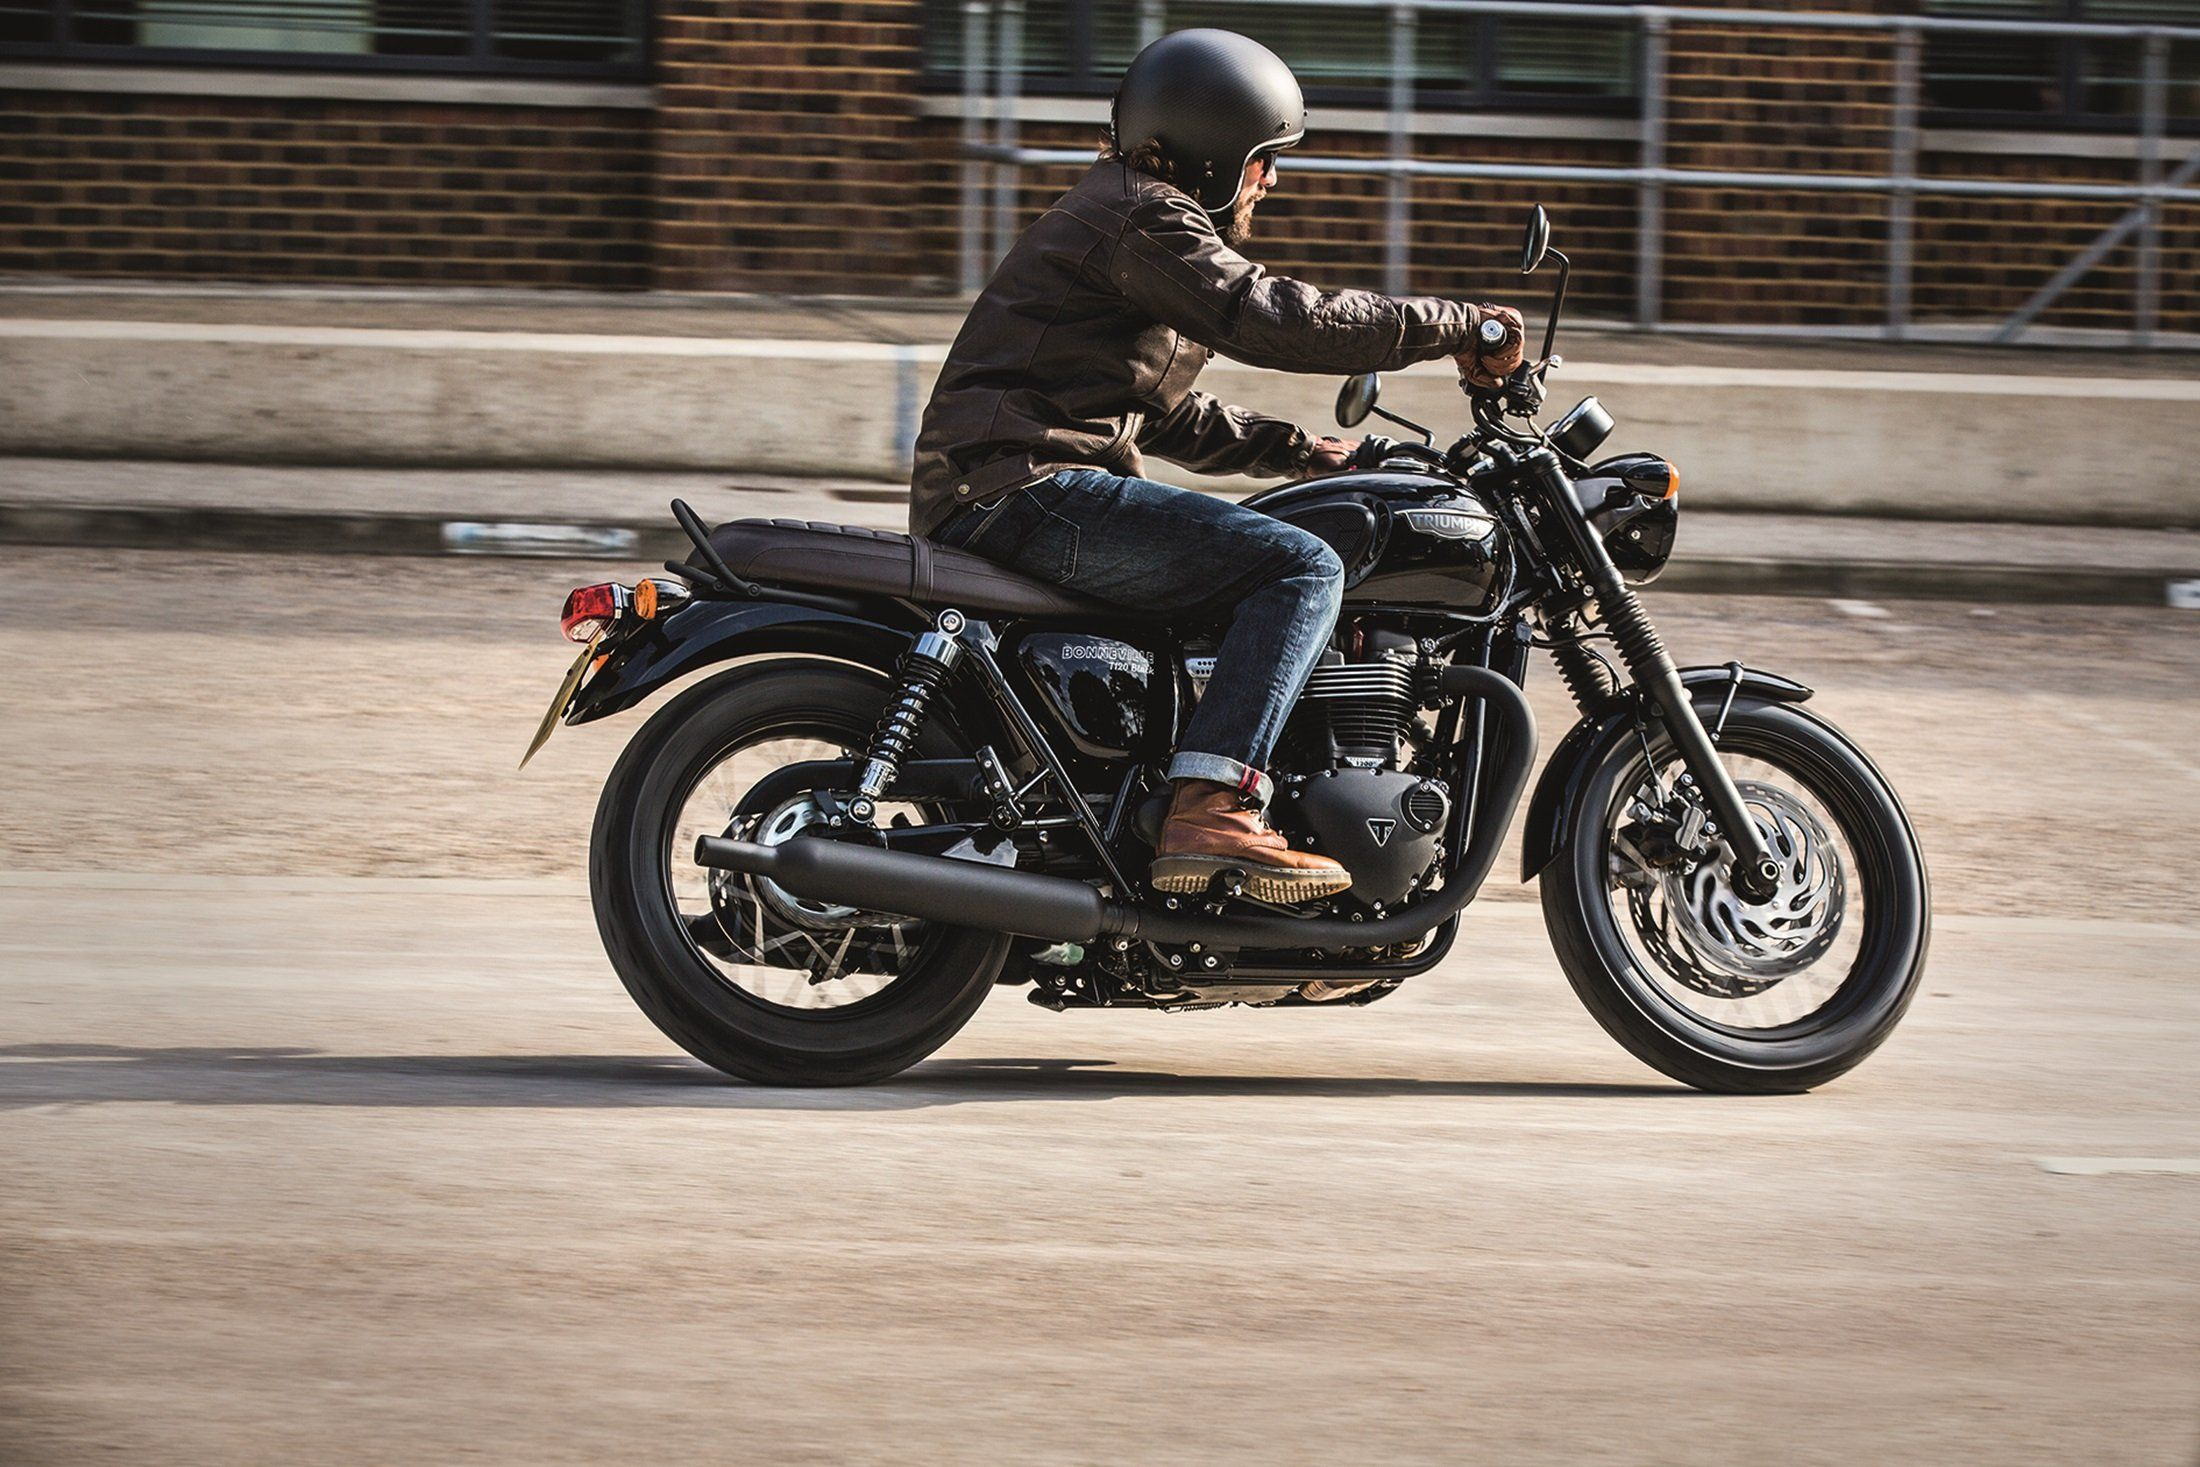 2016 Triumph Bonneville T120 Black in Brea, California